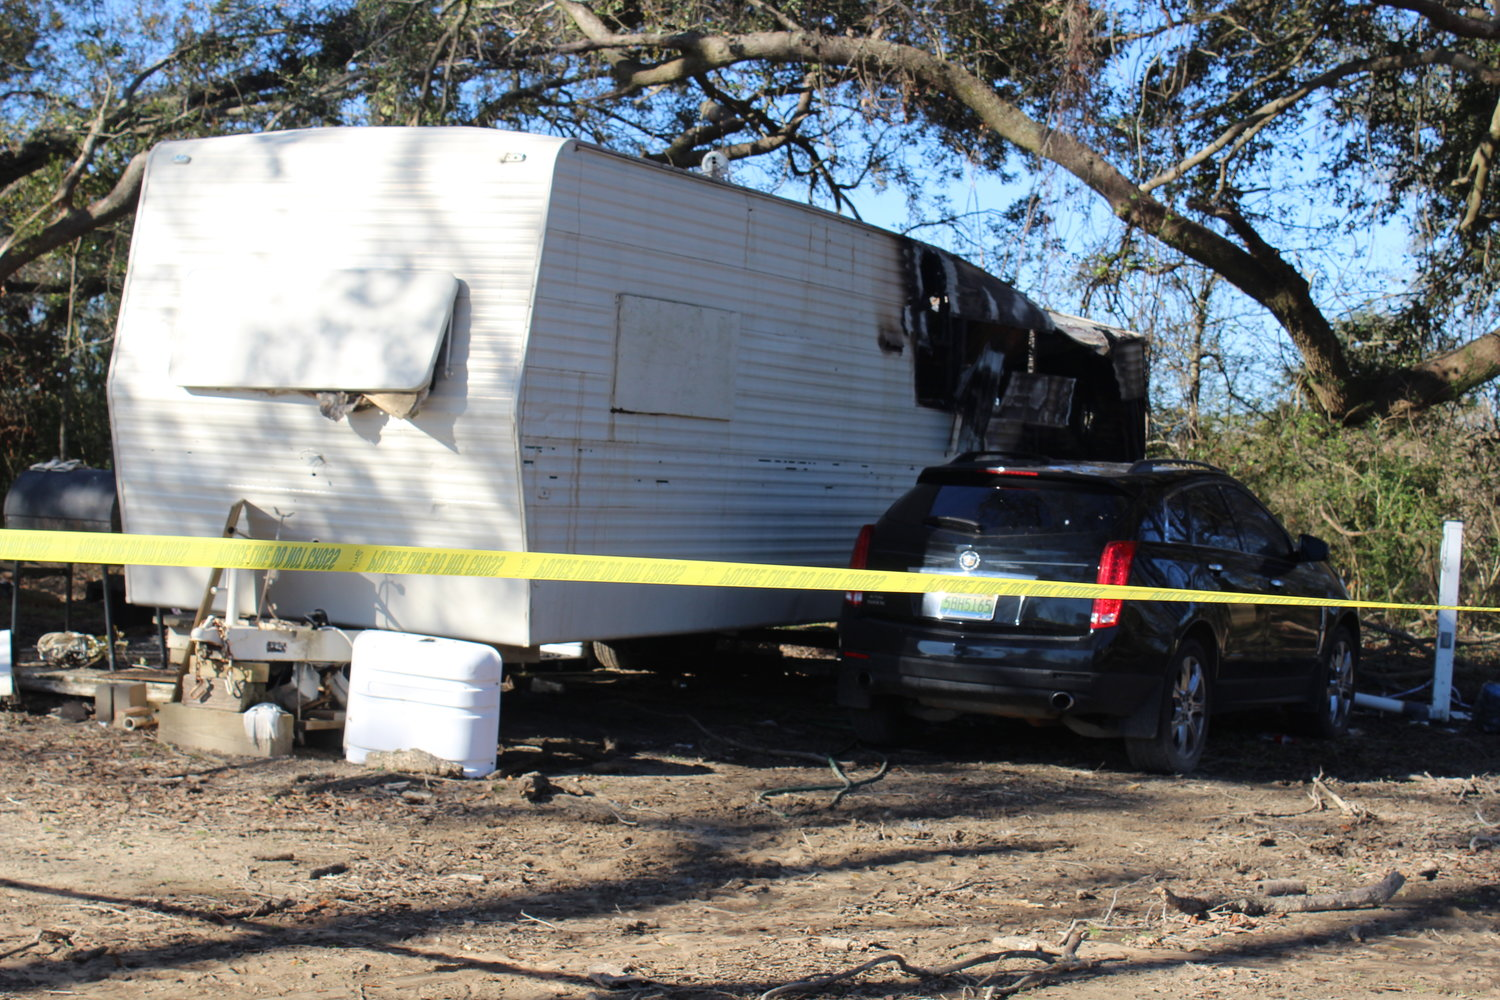 Fire destroyed this RV in the early morning hours Monday, Jan. 4 at Sandy Toes RV Park, claiming the life of 62-year-old Steven Dollhofer.